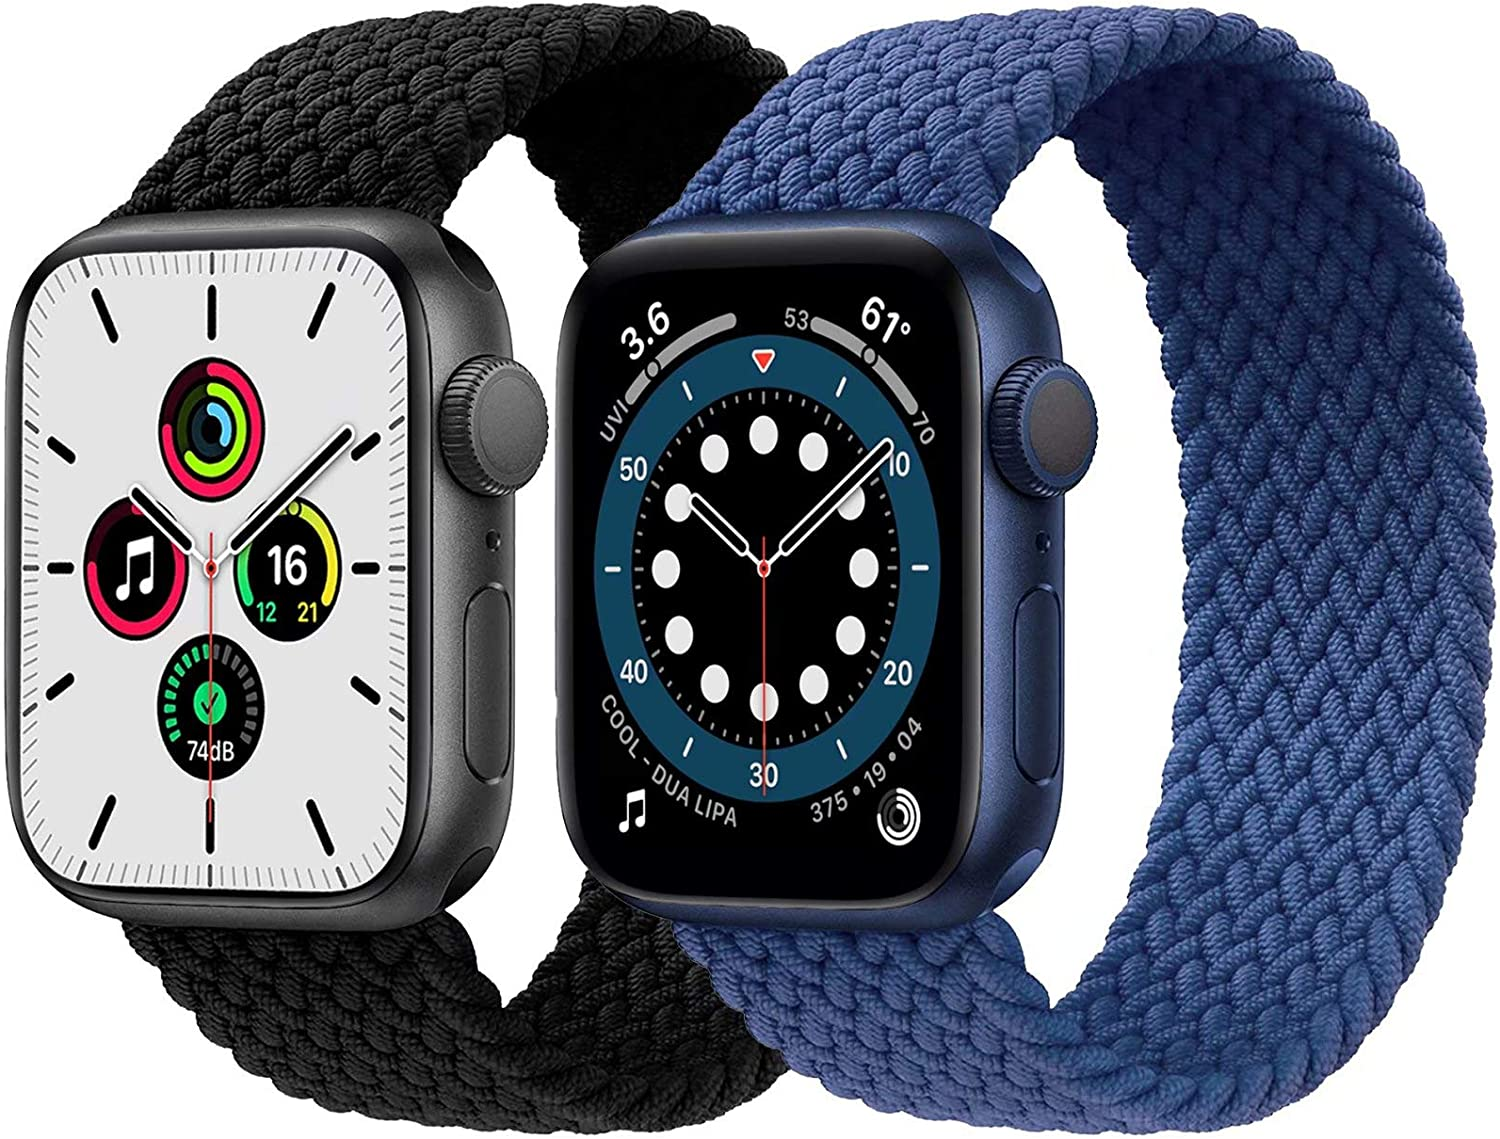 2-Pack Solo Loop Strap Compatible with Apple Watch Band 38mm 40mm,No Clasps No Buckles Stretchable Braided Sport Elastics Replacement Wristband for iWatch Series 6/5/4/3/2/1,SE,Black&Blue,6#